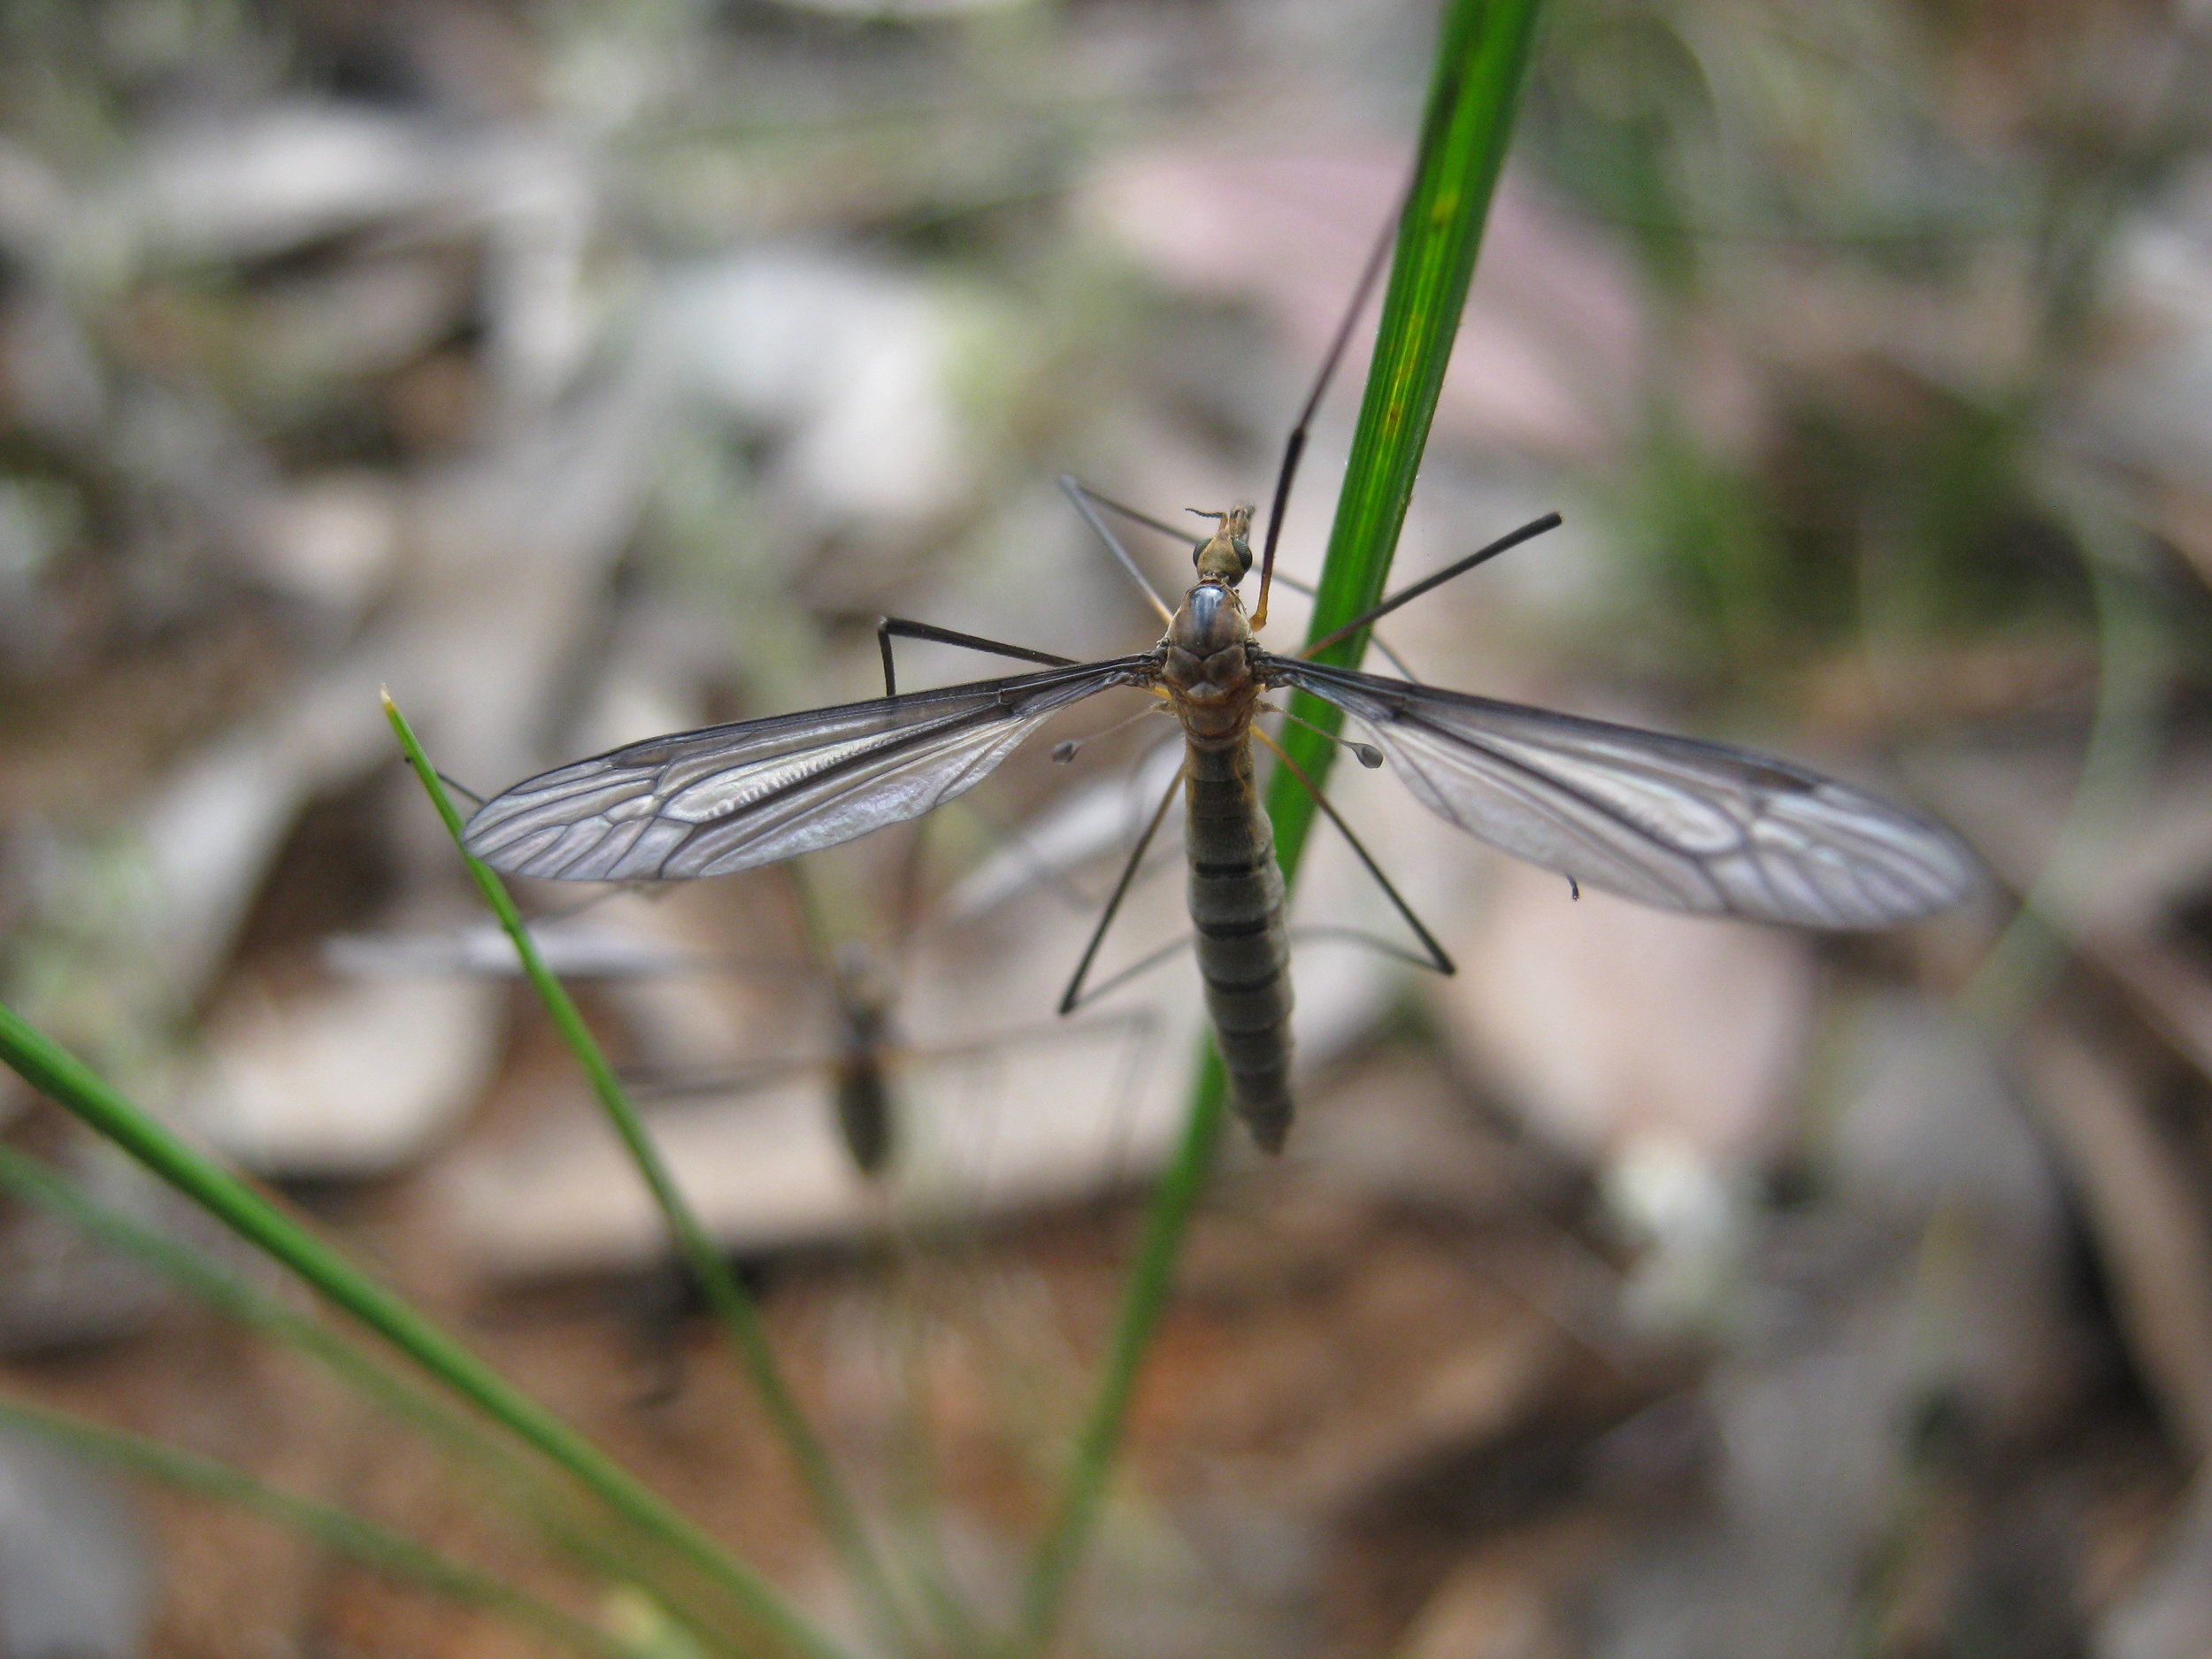 A crane fly. Image: Wendy Cook